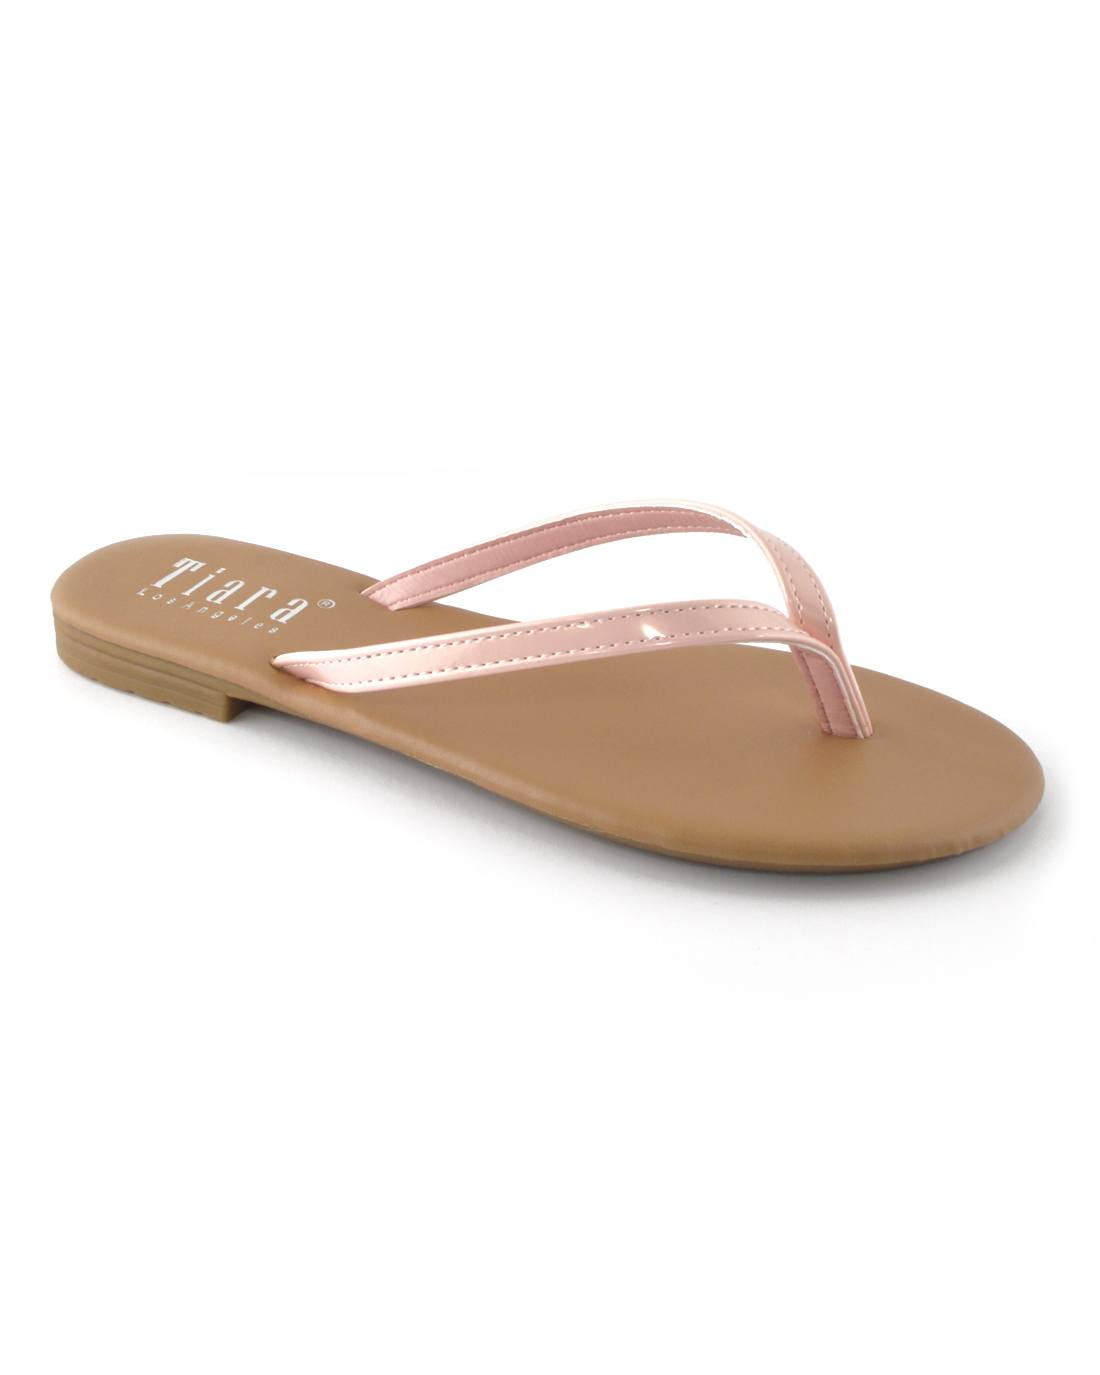 V-Shaped Flat Sandals-5.5-MY UPSCALE STORE